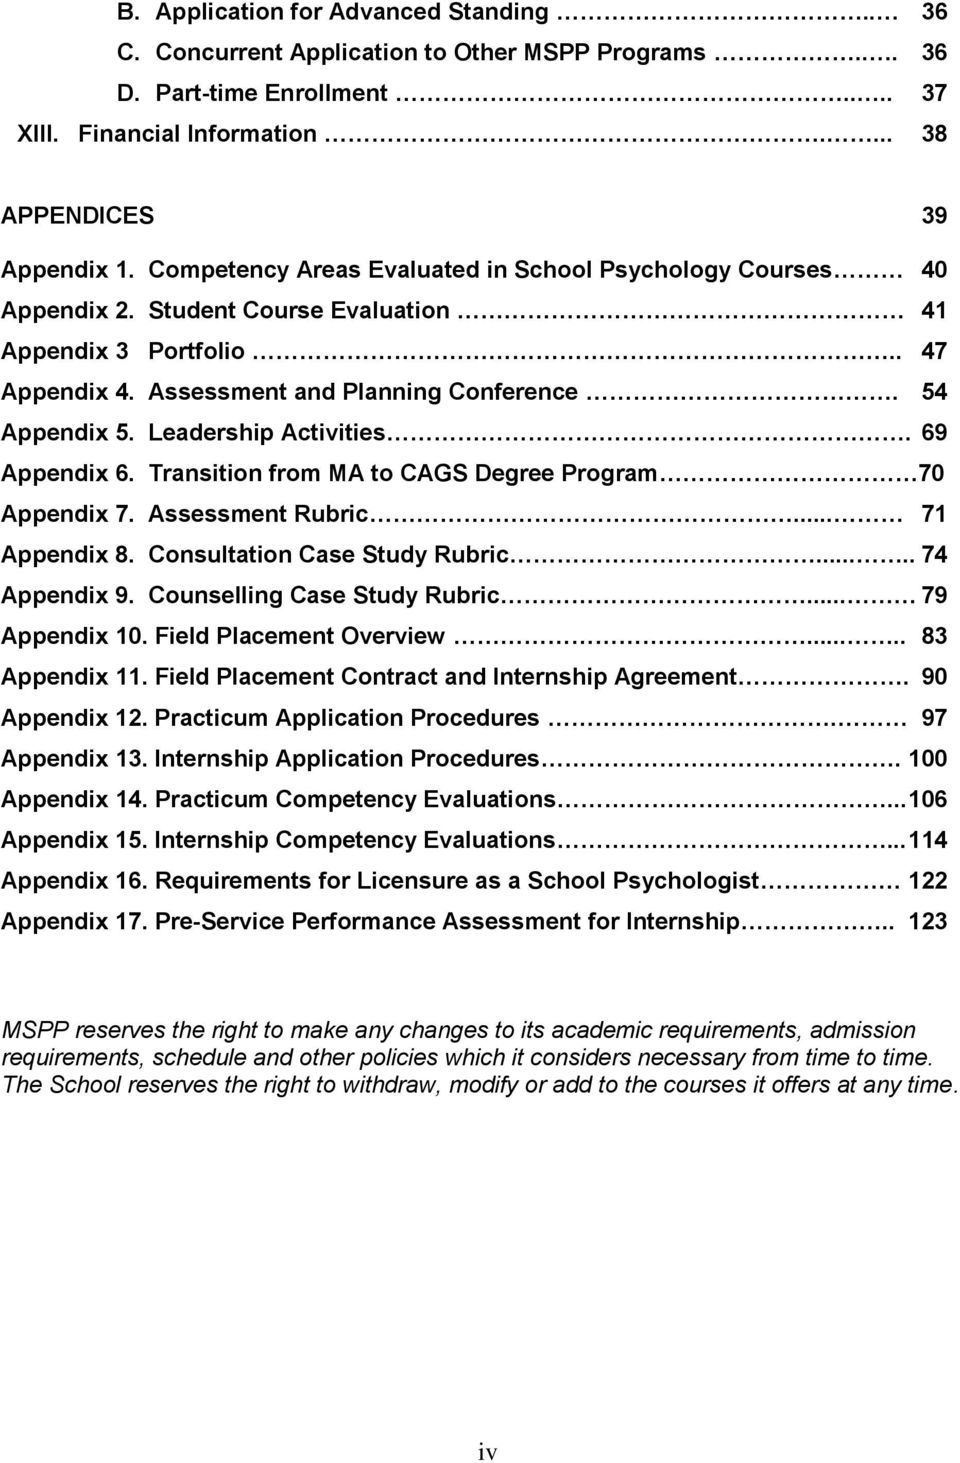 Leadership Activities. 69 Appendix 6. Transition from MA to CAGS Degree Program 70 Appendix 7. Assessment Rubric... 71 Appendix 8. Consultation Case Study Rubric..... 74 Appendix 9.